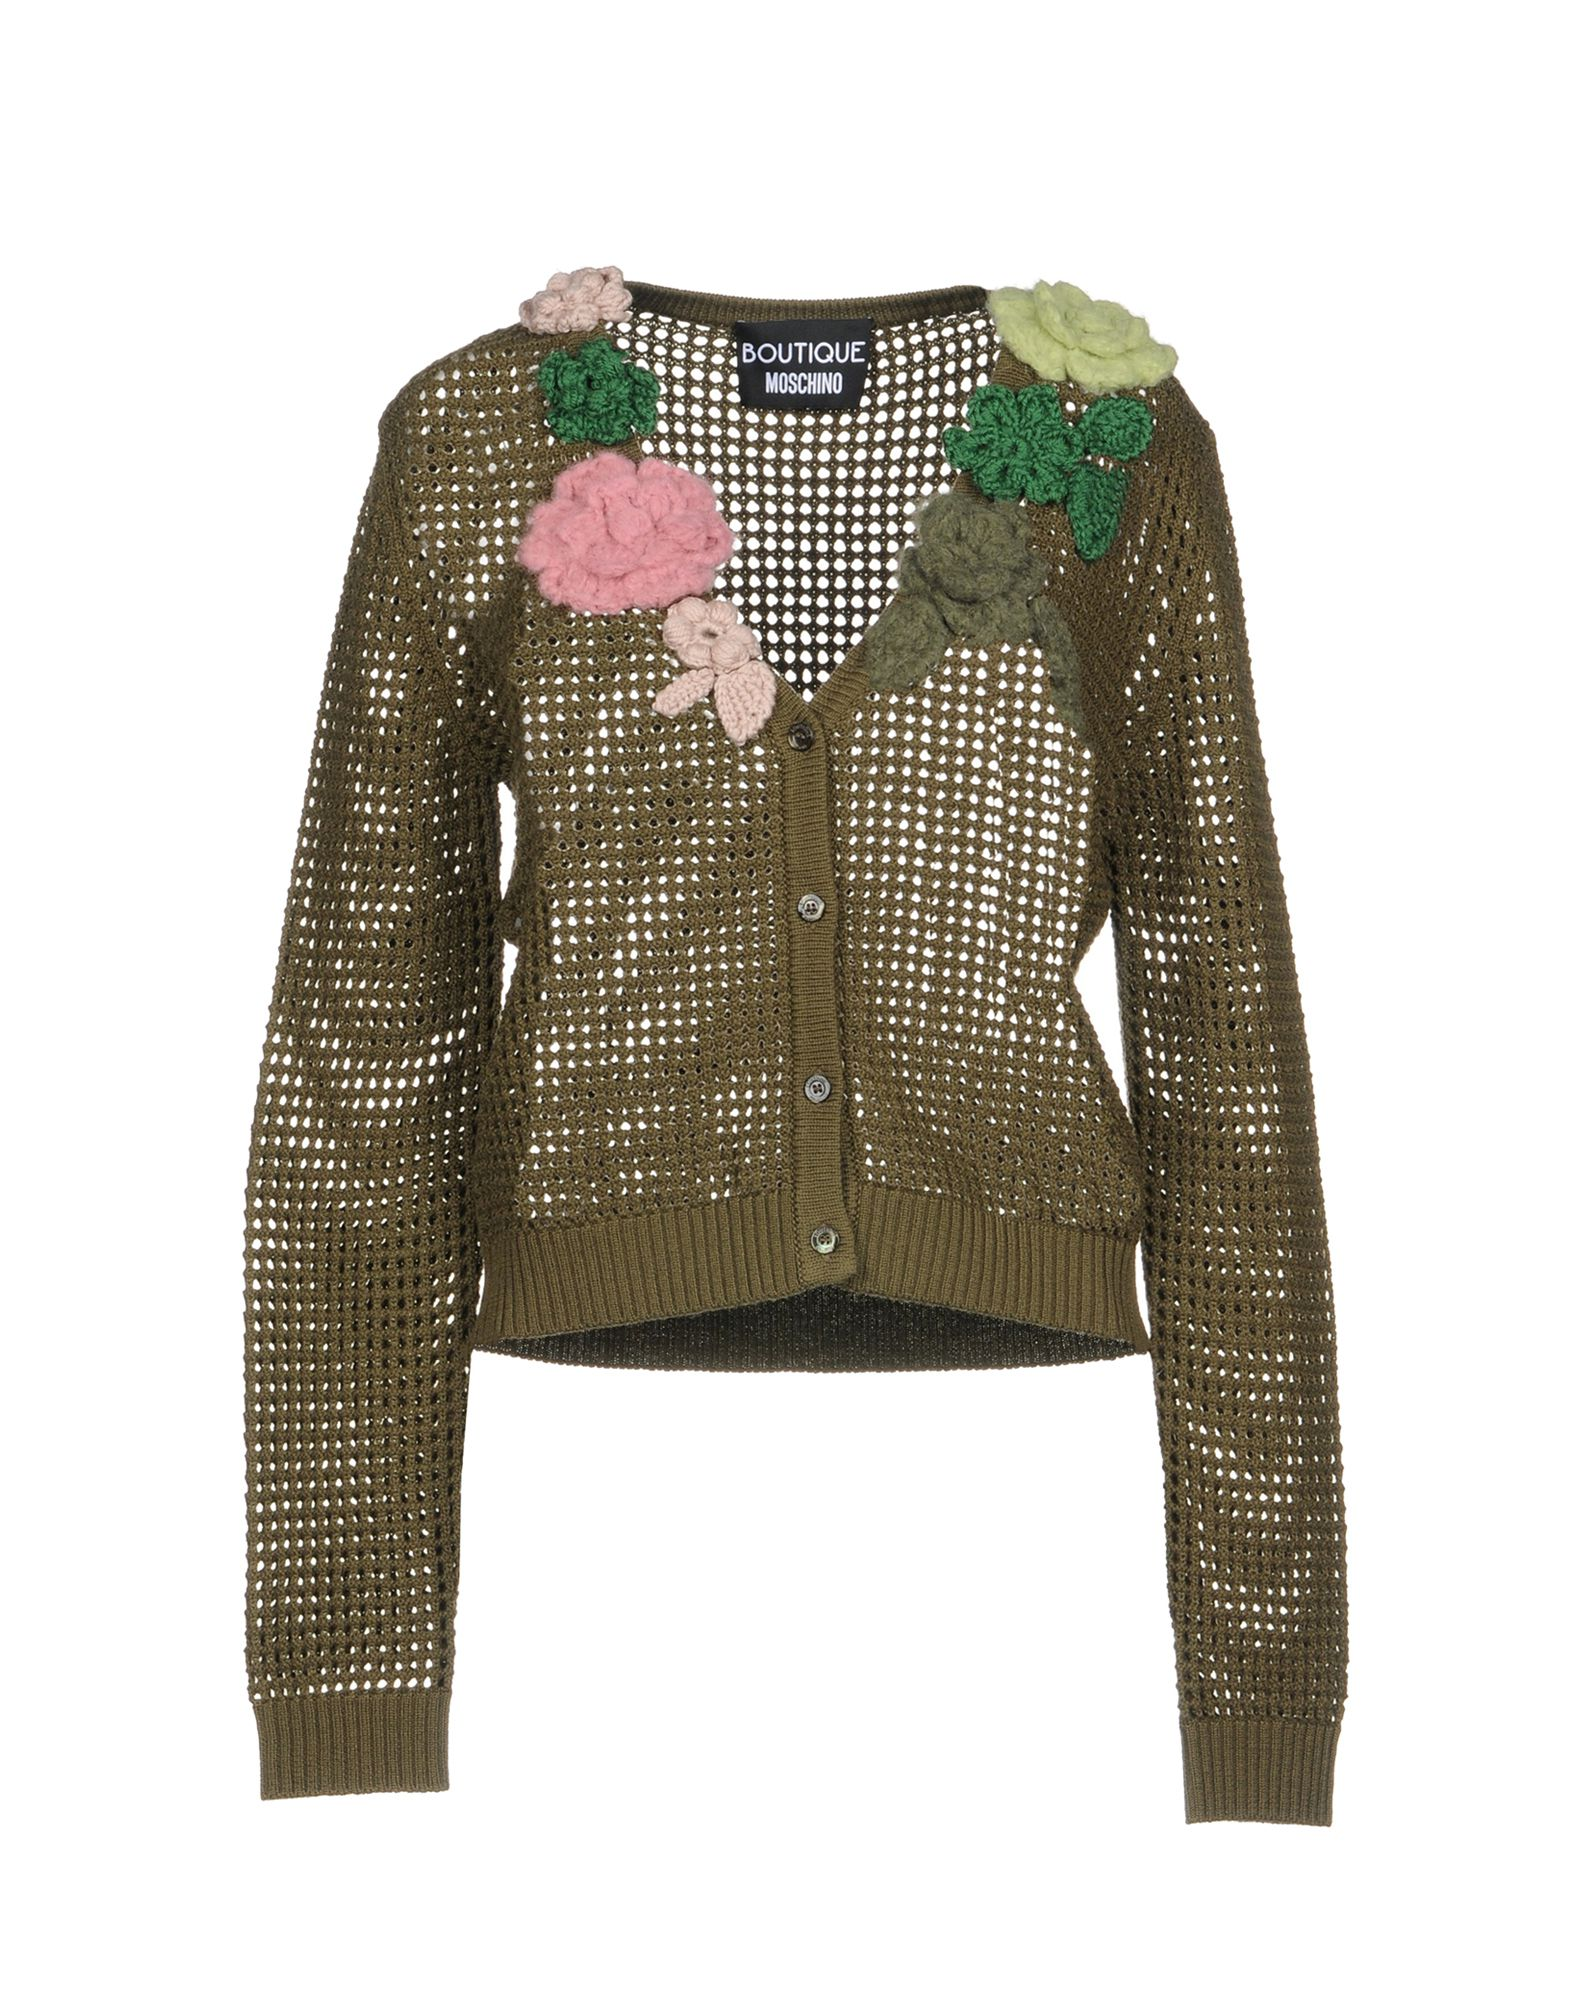 Cardigan Boutique Moschino Donna - Acquista online su FiMrc1